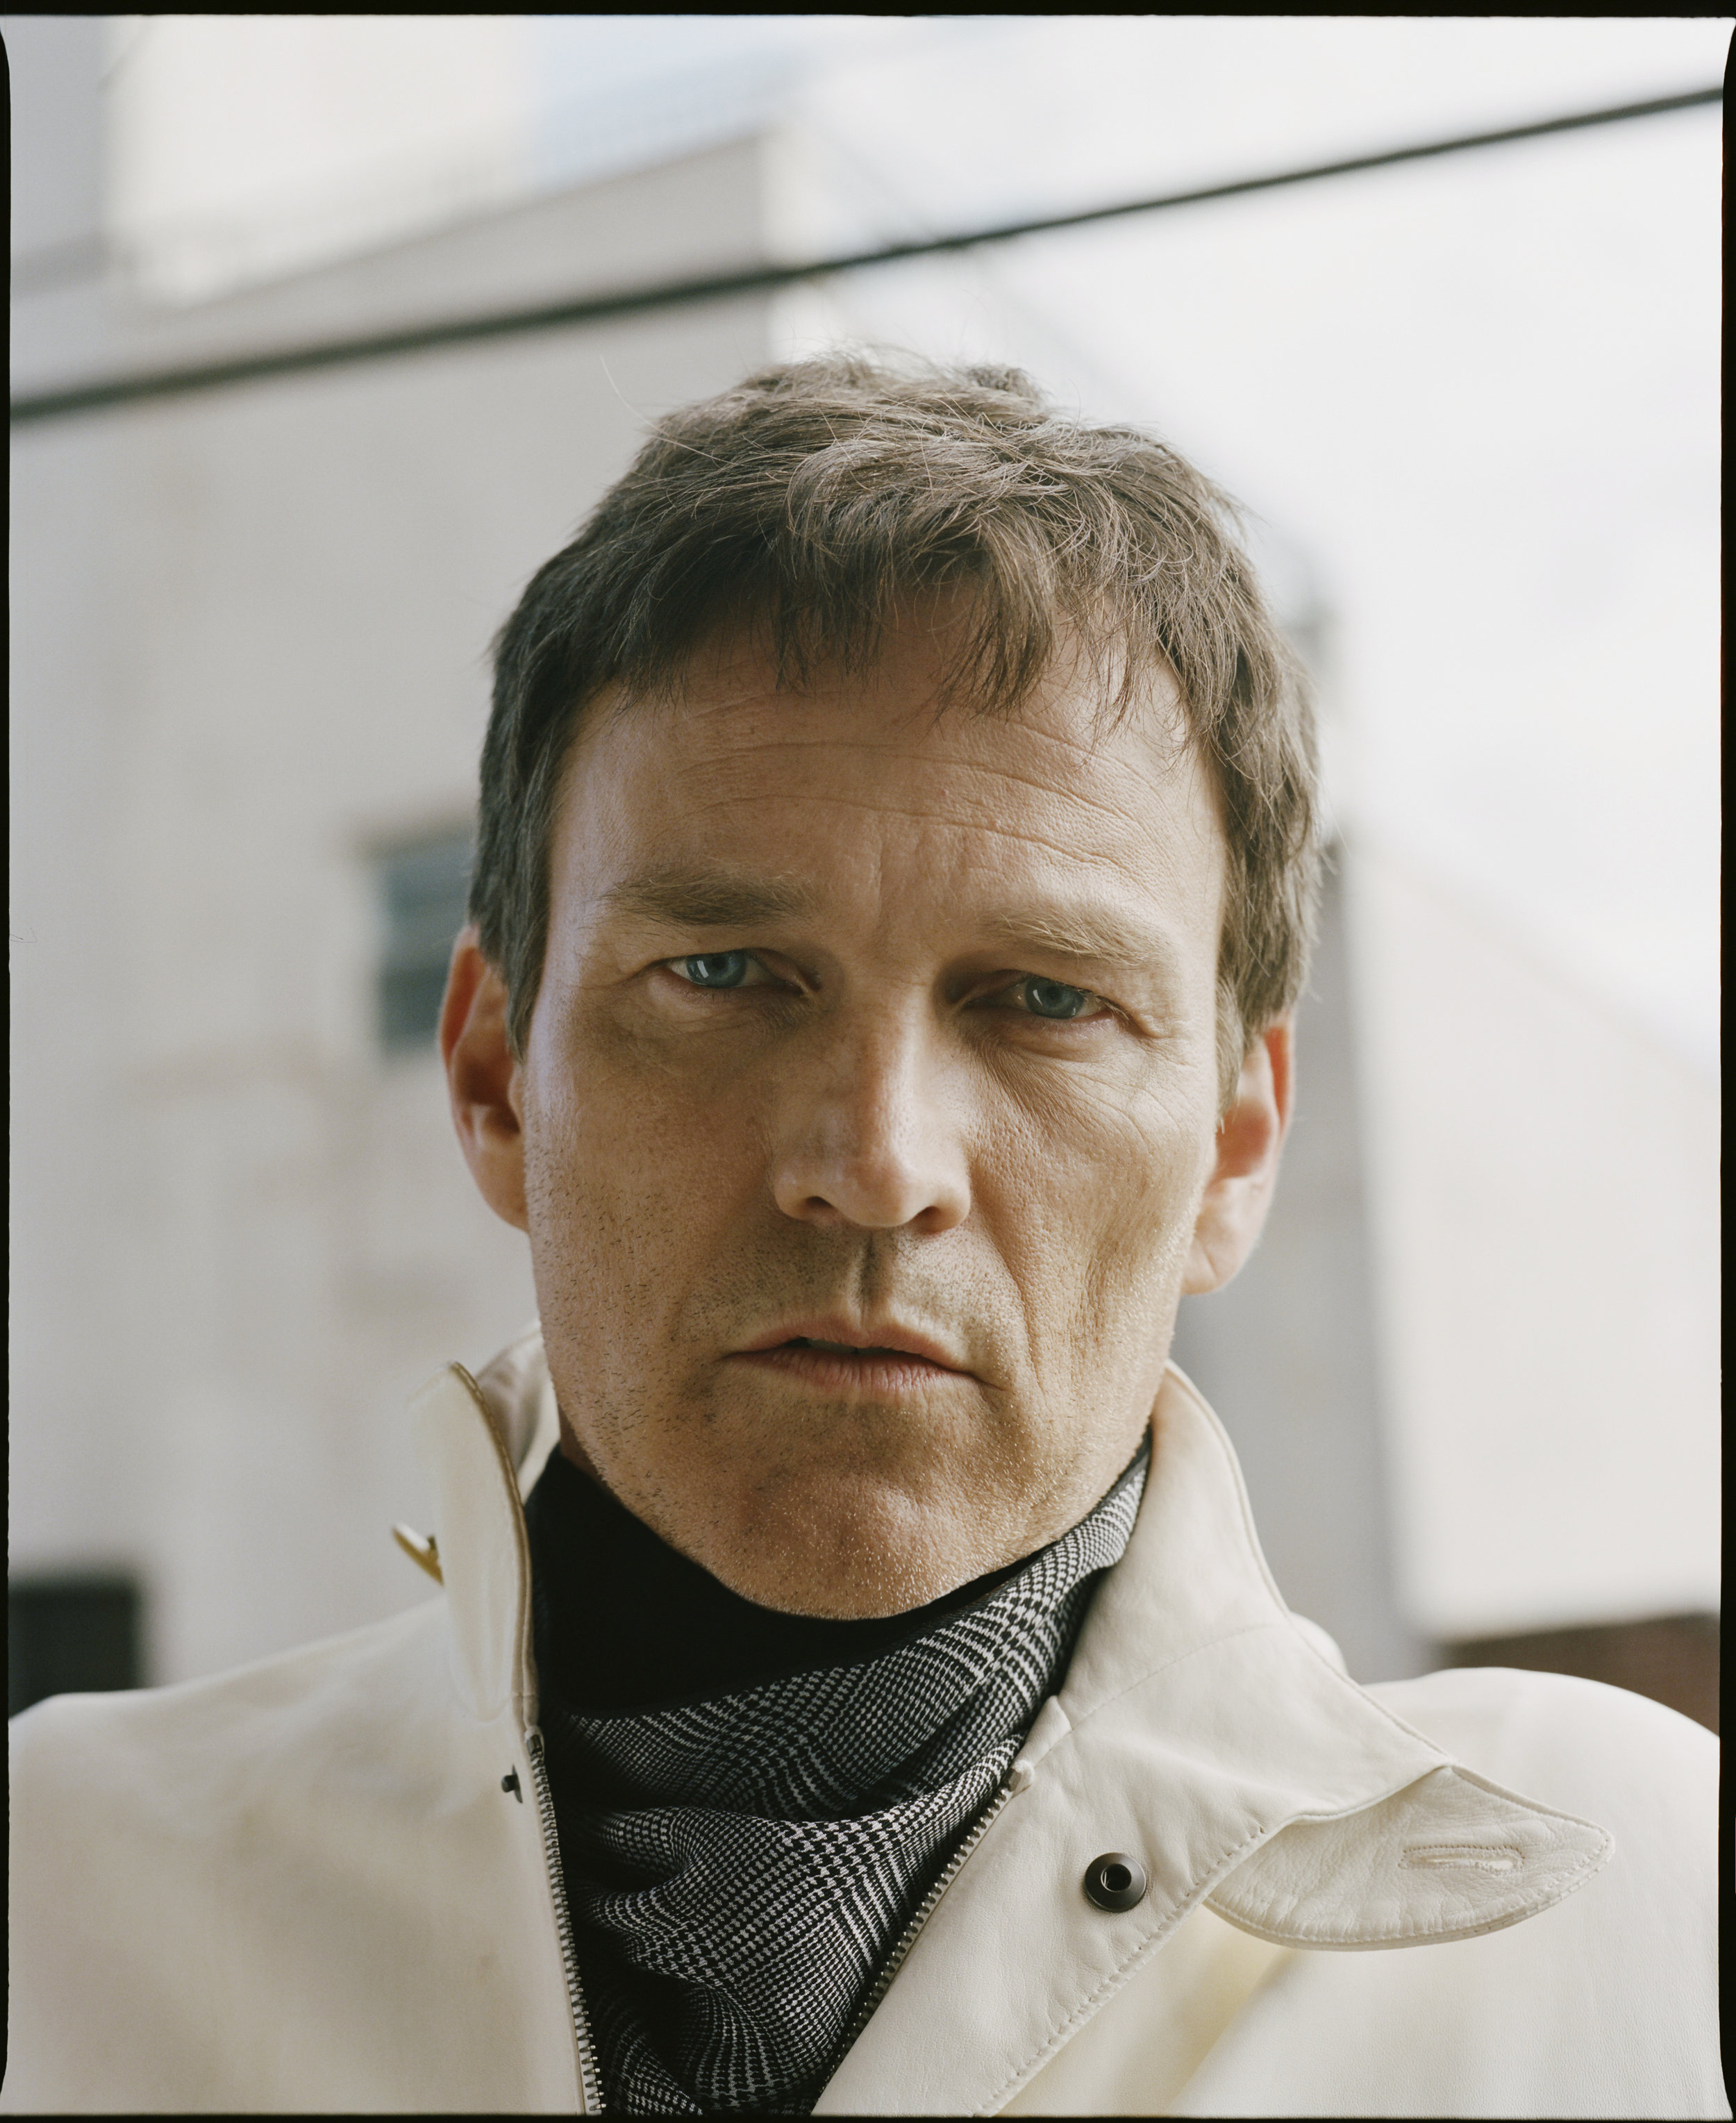 stephen_moyer_the_laterals_13.jpg